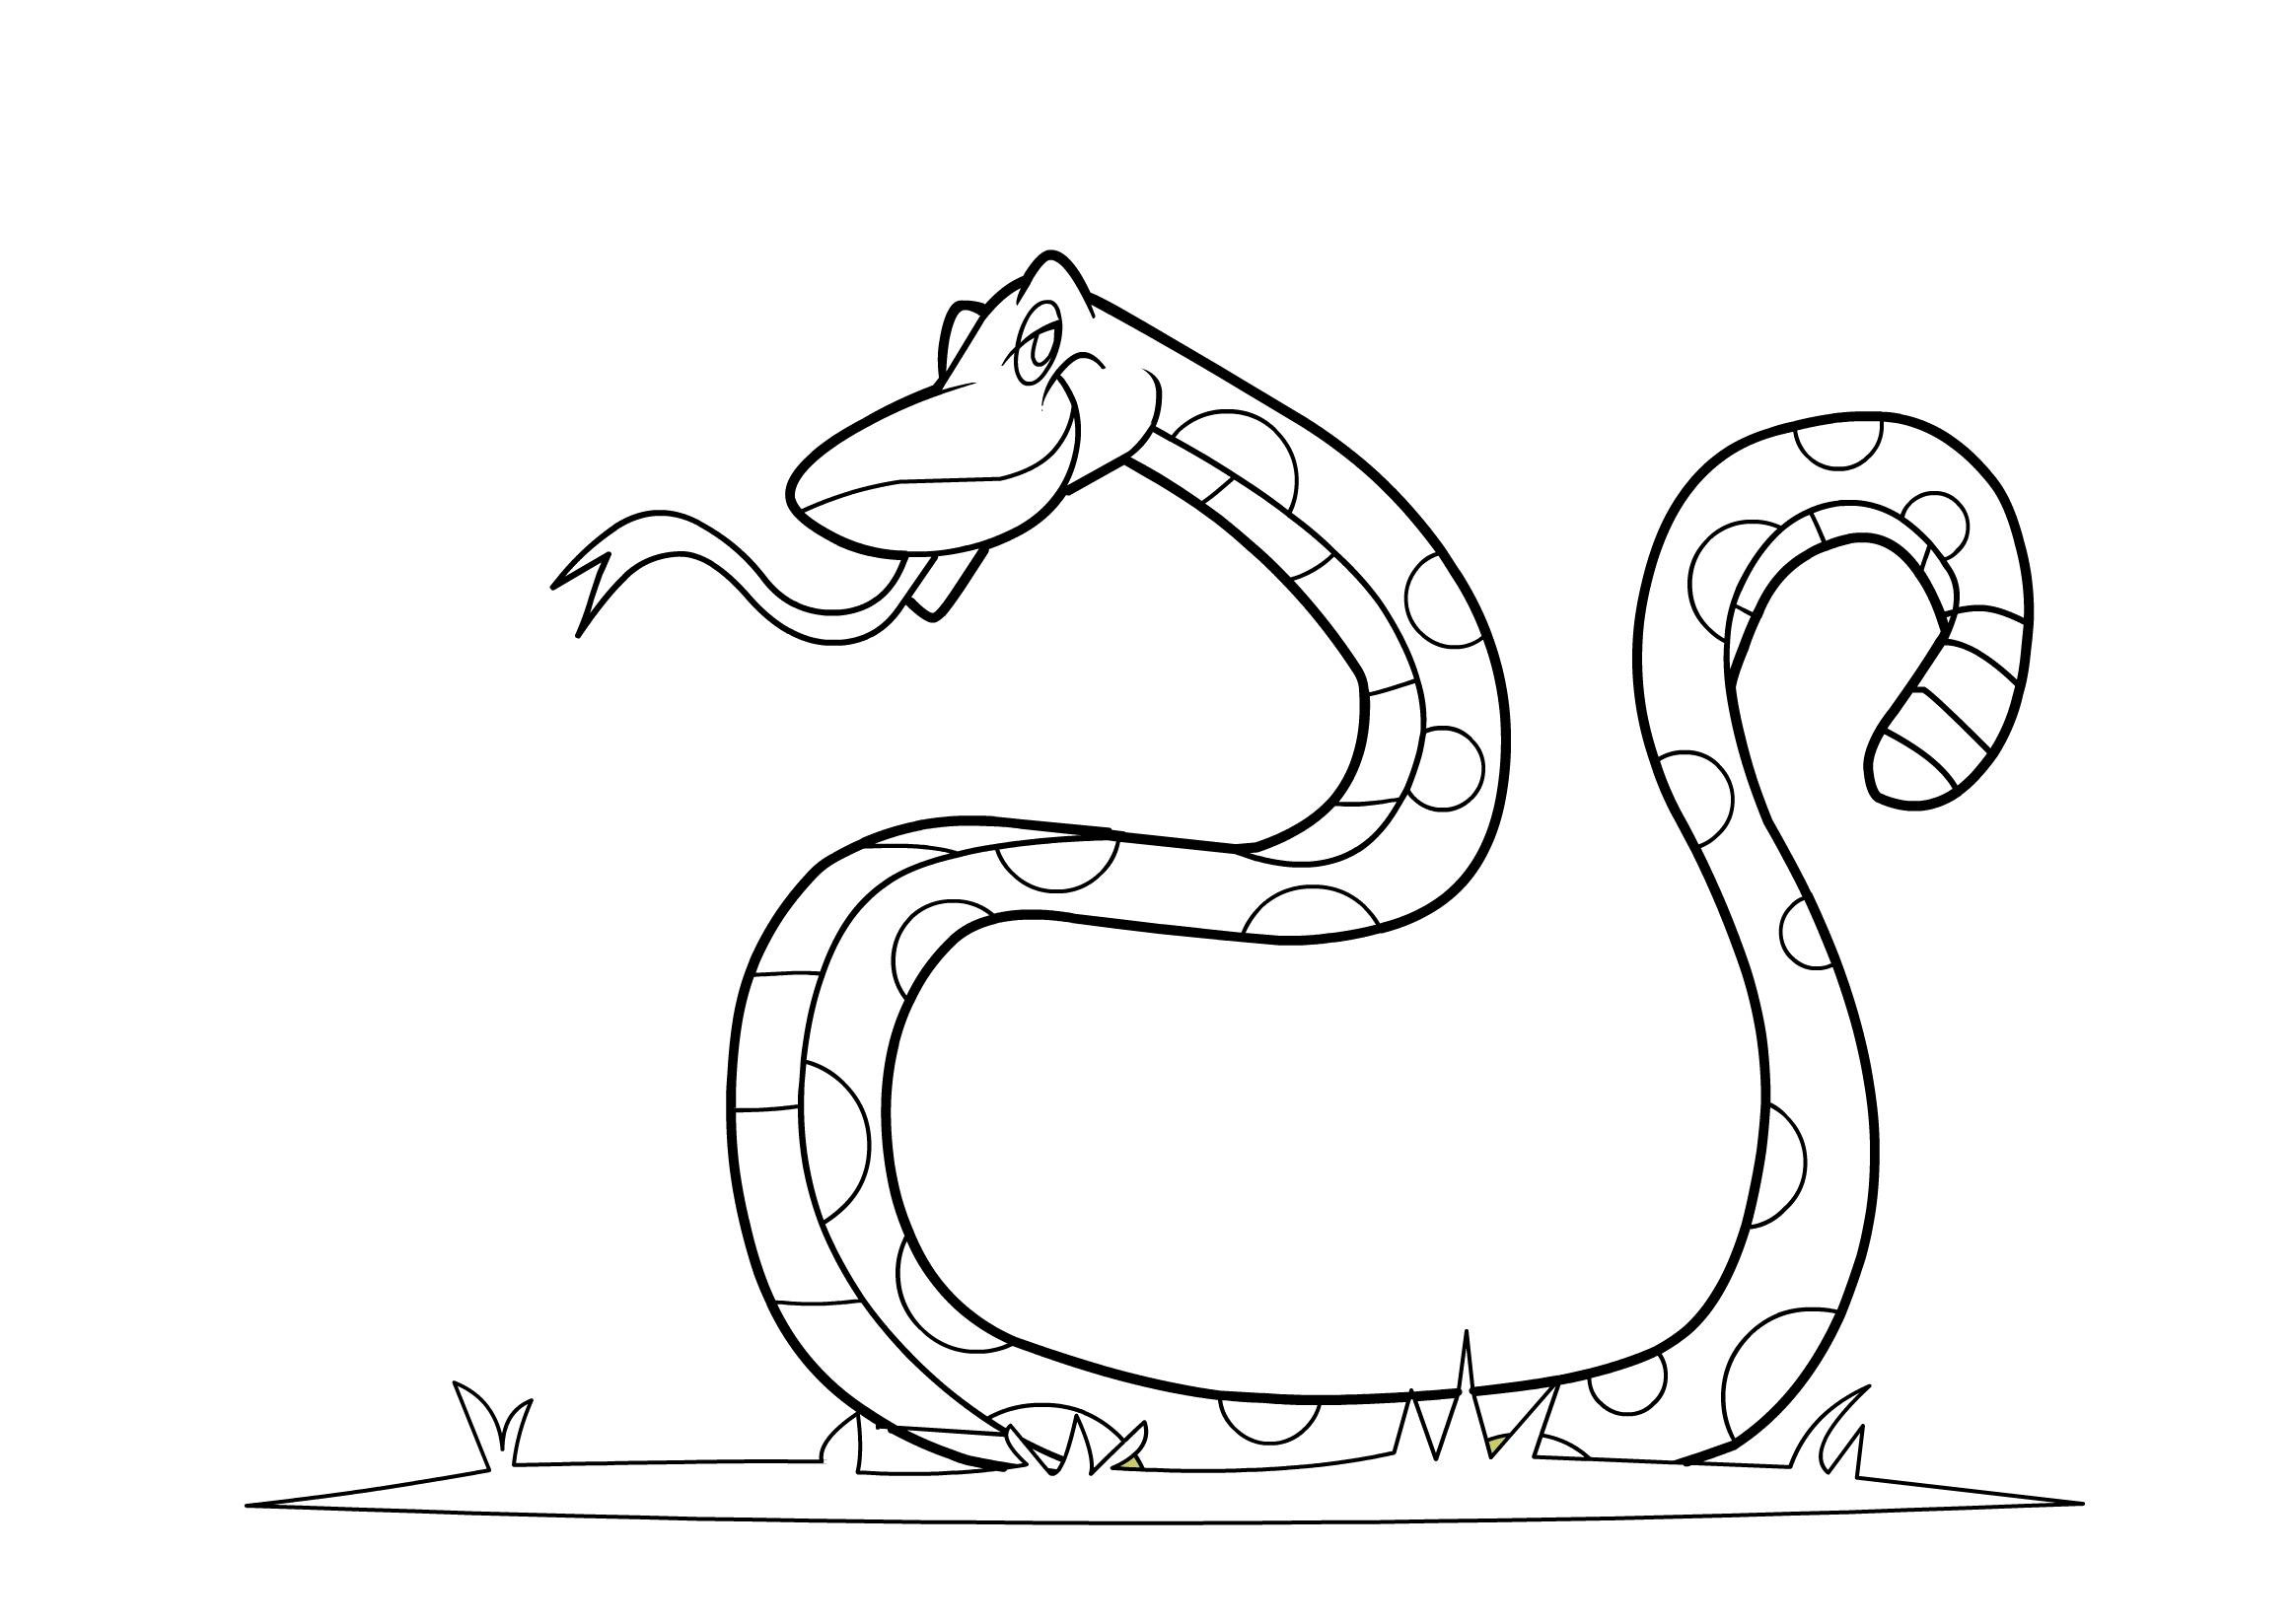 Snake Coloring Pages Printable Coloring Coloring Pages